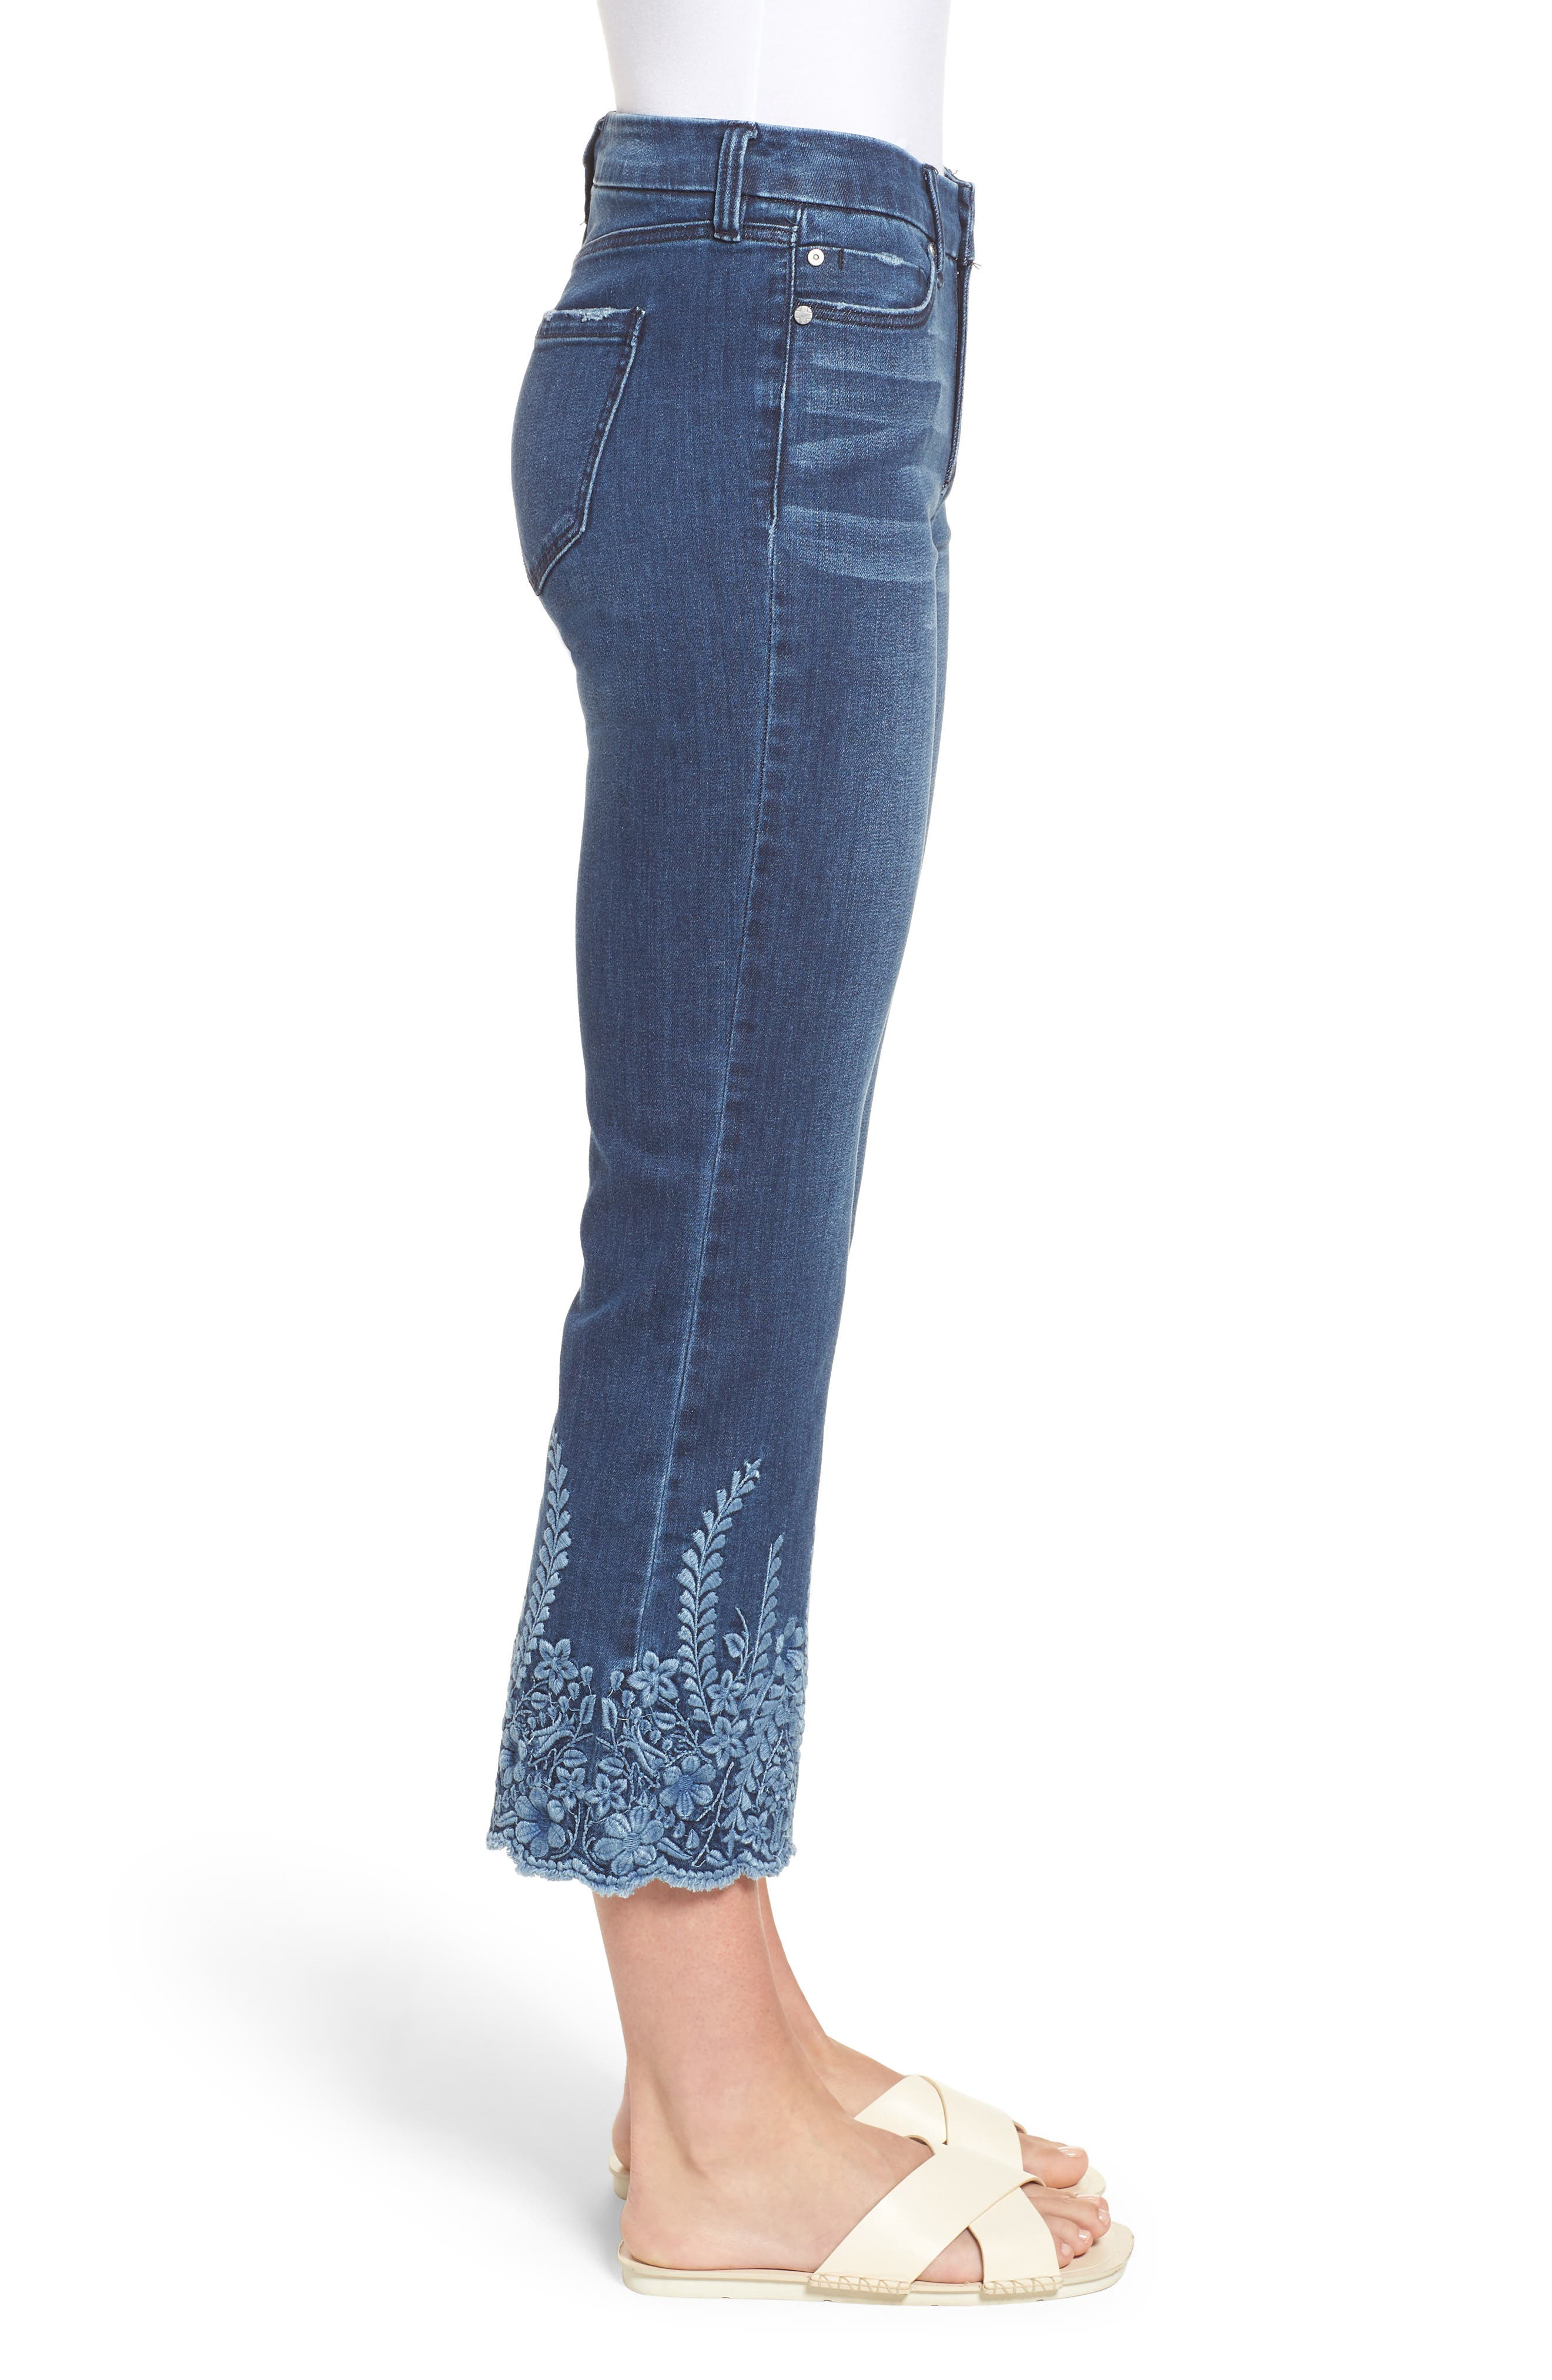 LVPL by Liverpool Coco Embroidered Hem Crop Jeans,                             Alternate thumbnail 4, color,                             Willow Wash